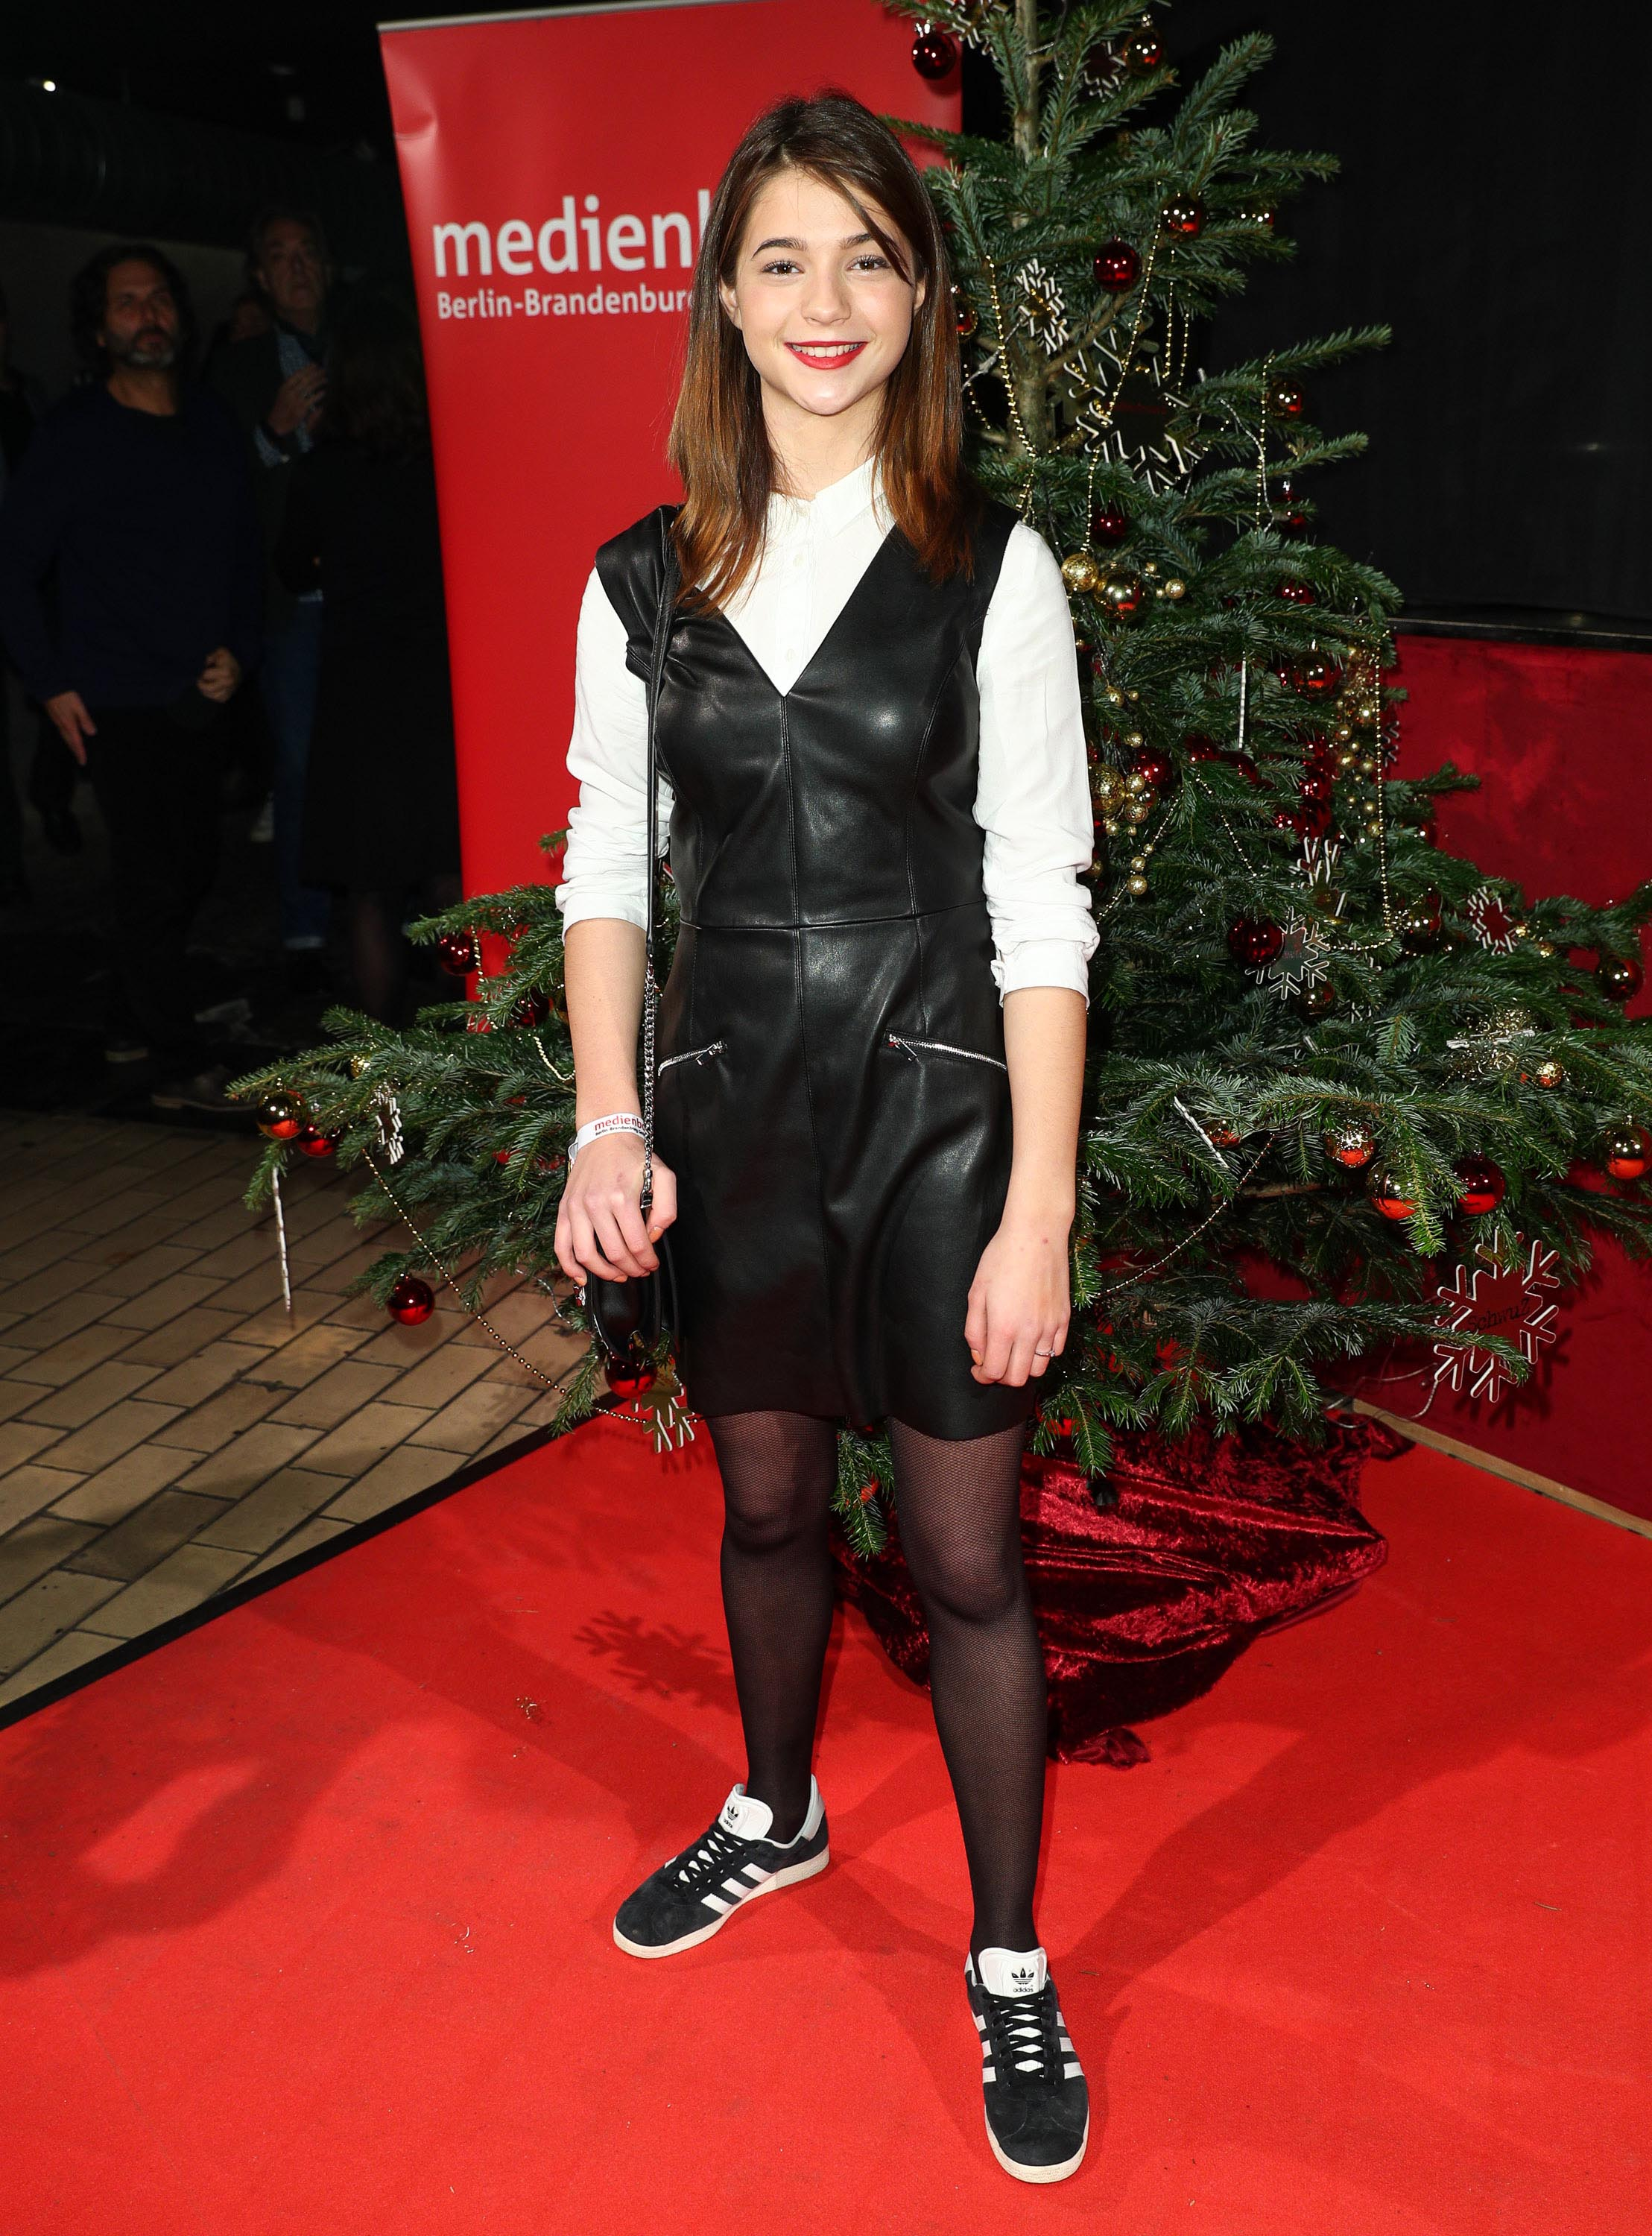 Lisa-Marie Koroll attends the Medienboard Pre-Christmas Party